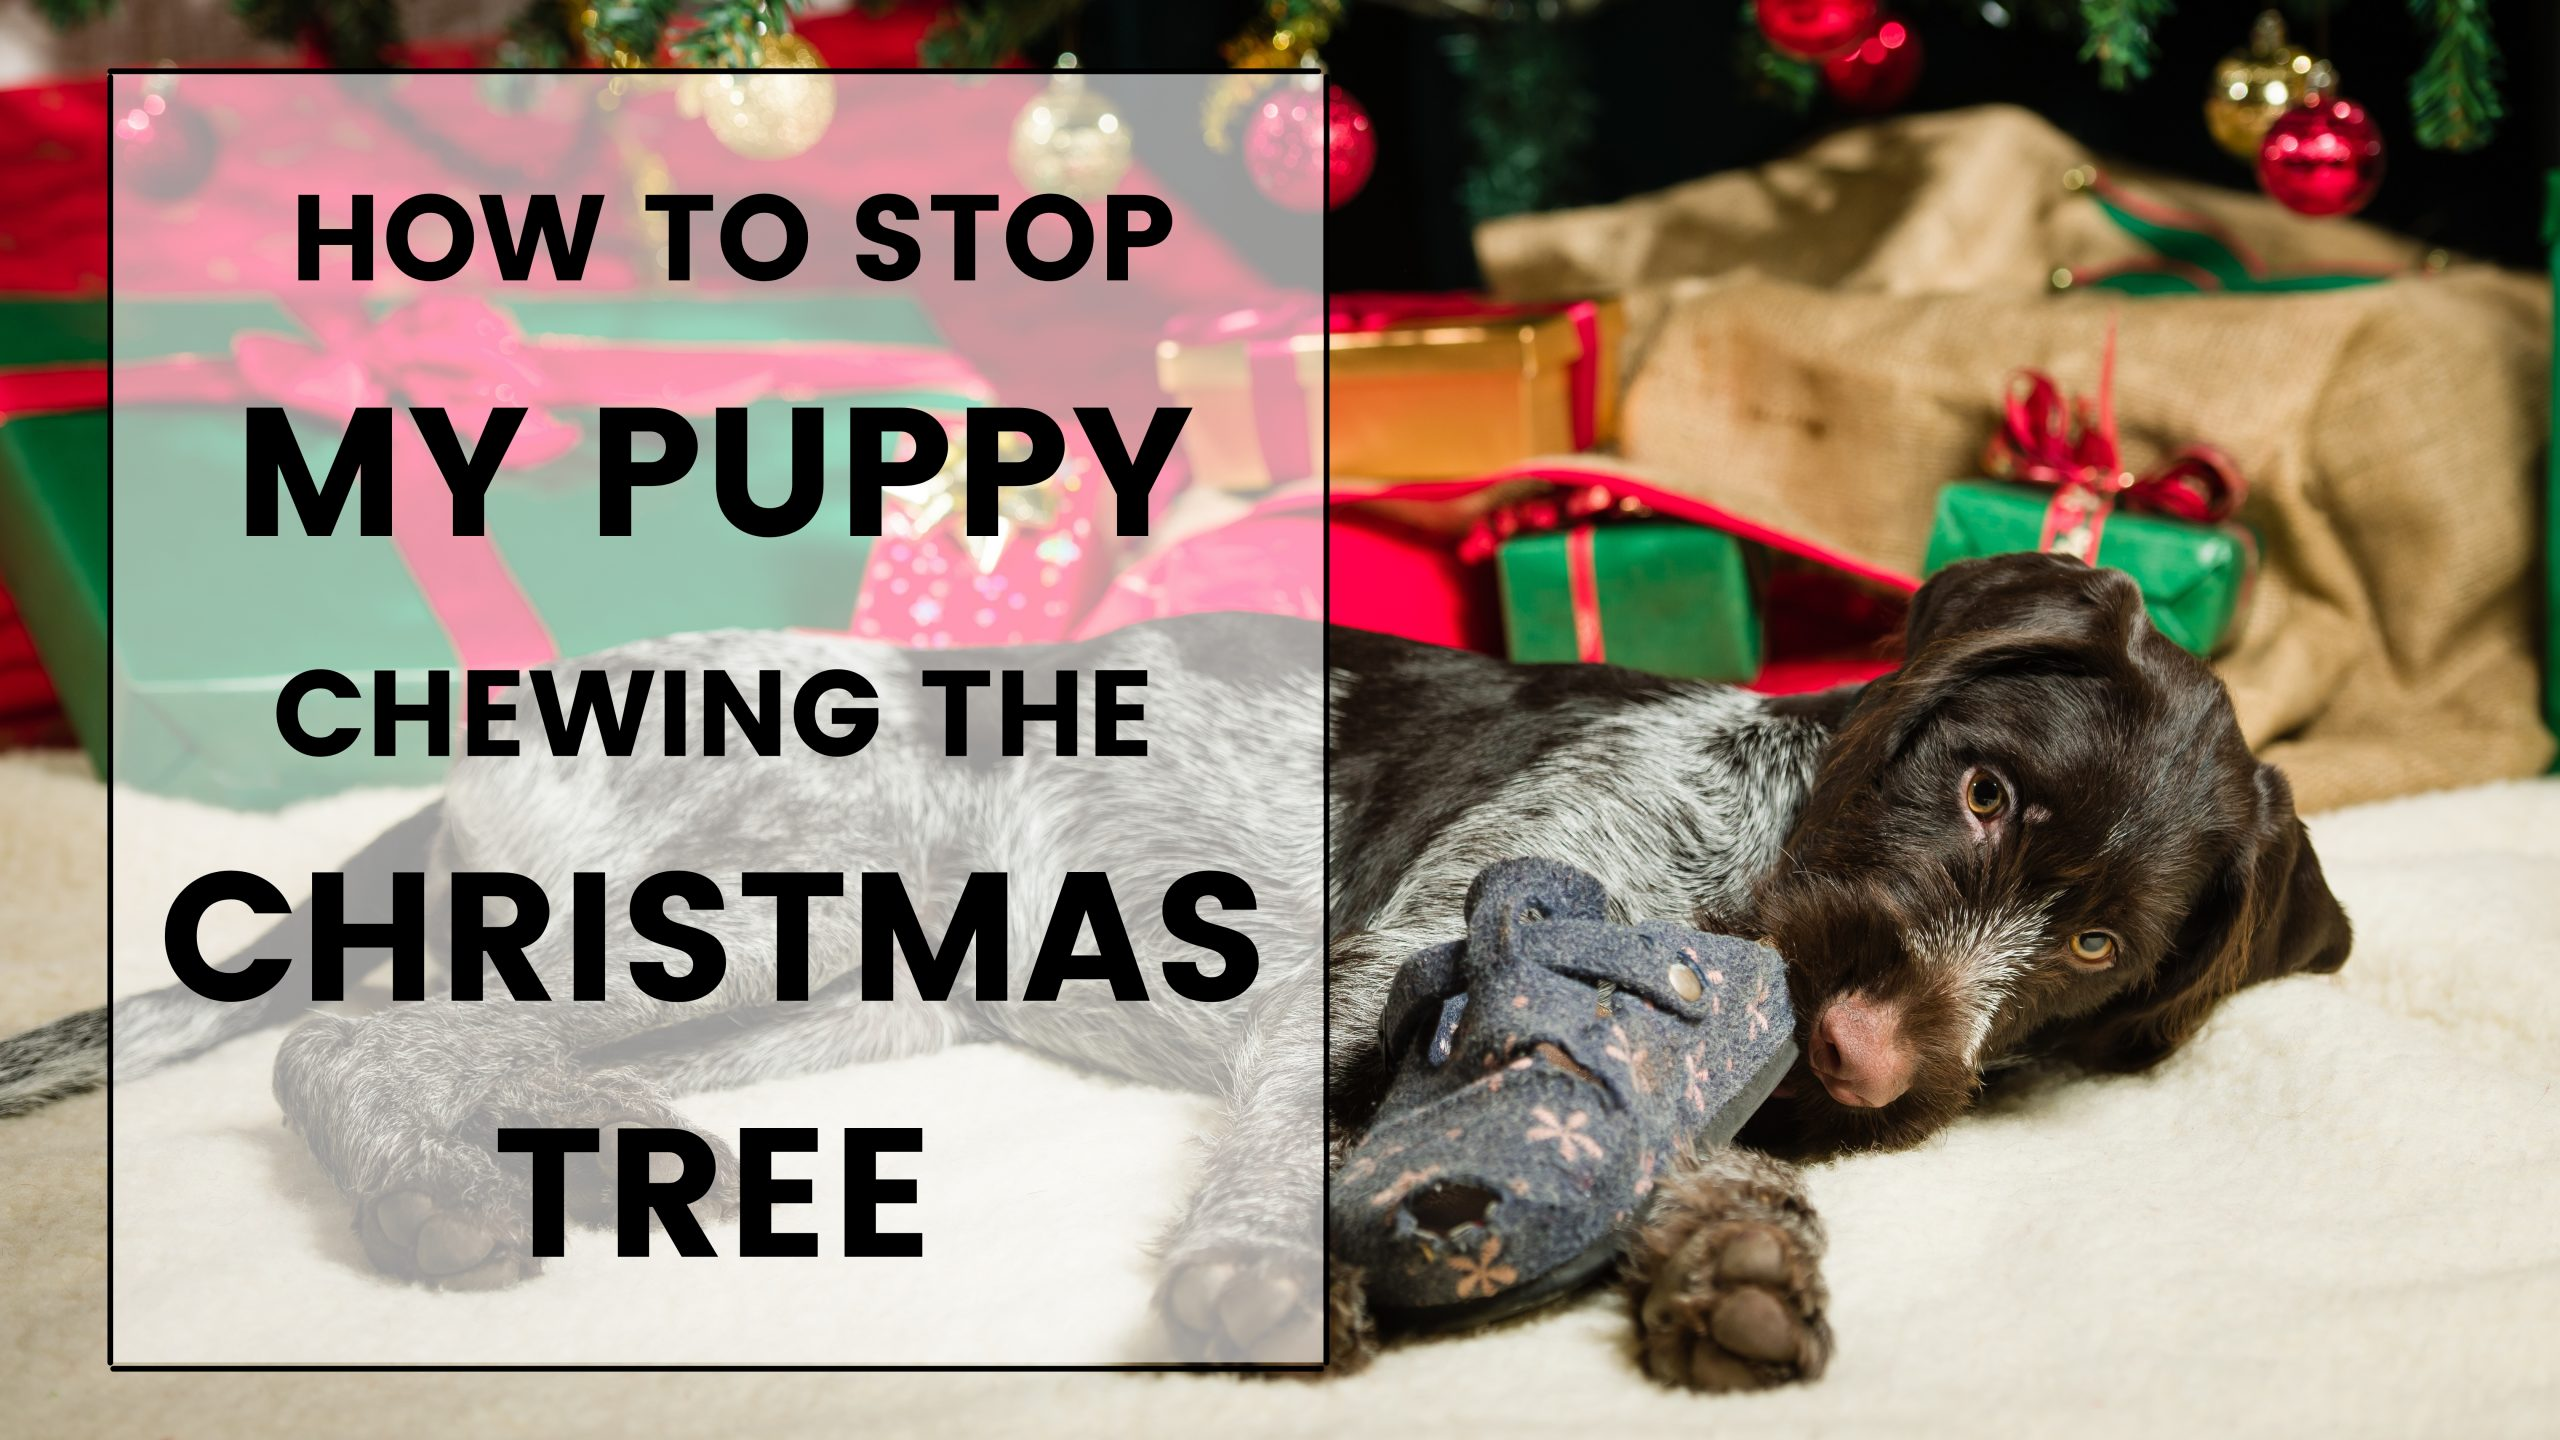 how to stop puppy chewing christmas tree